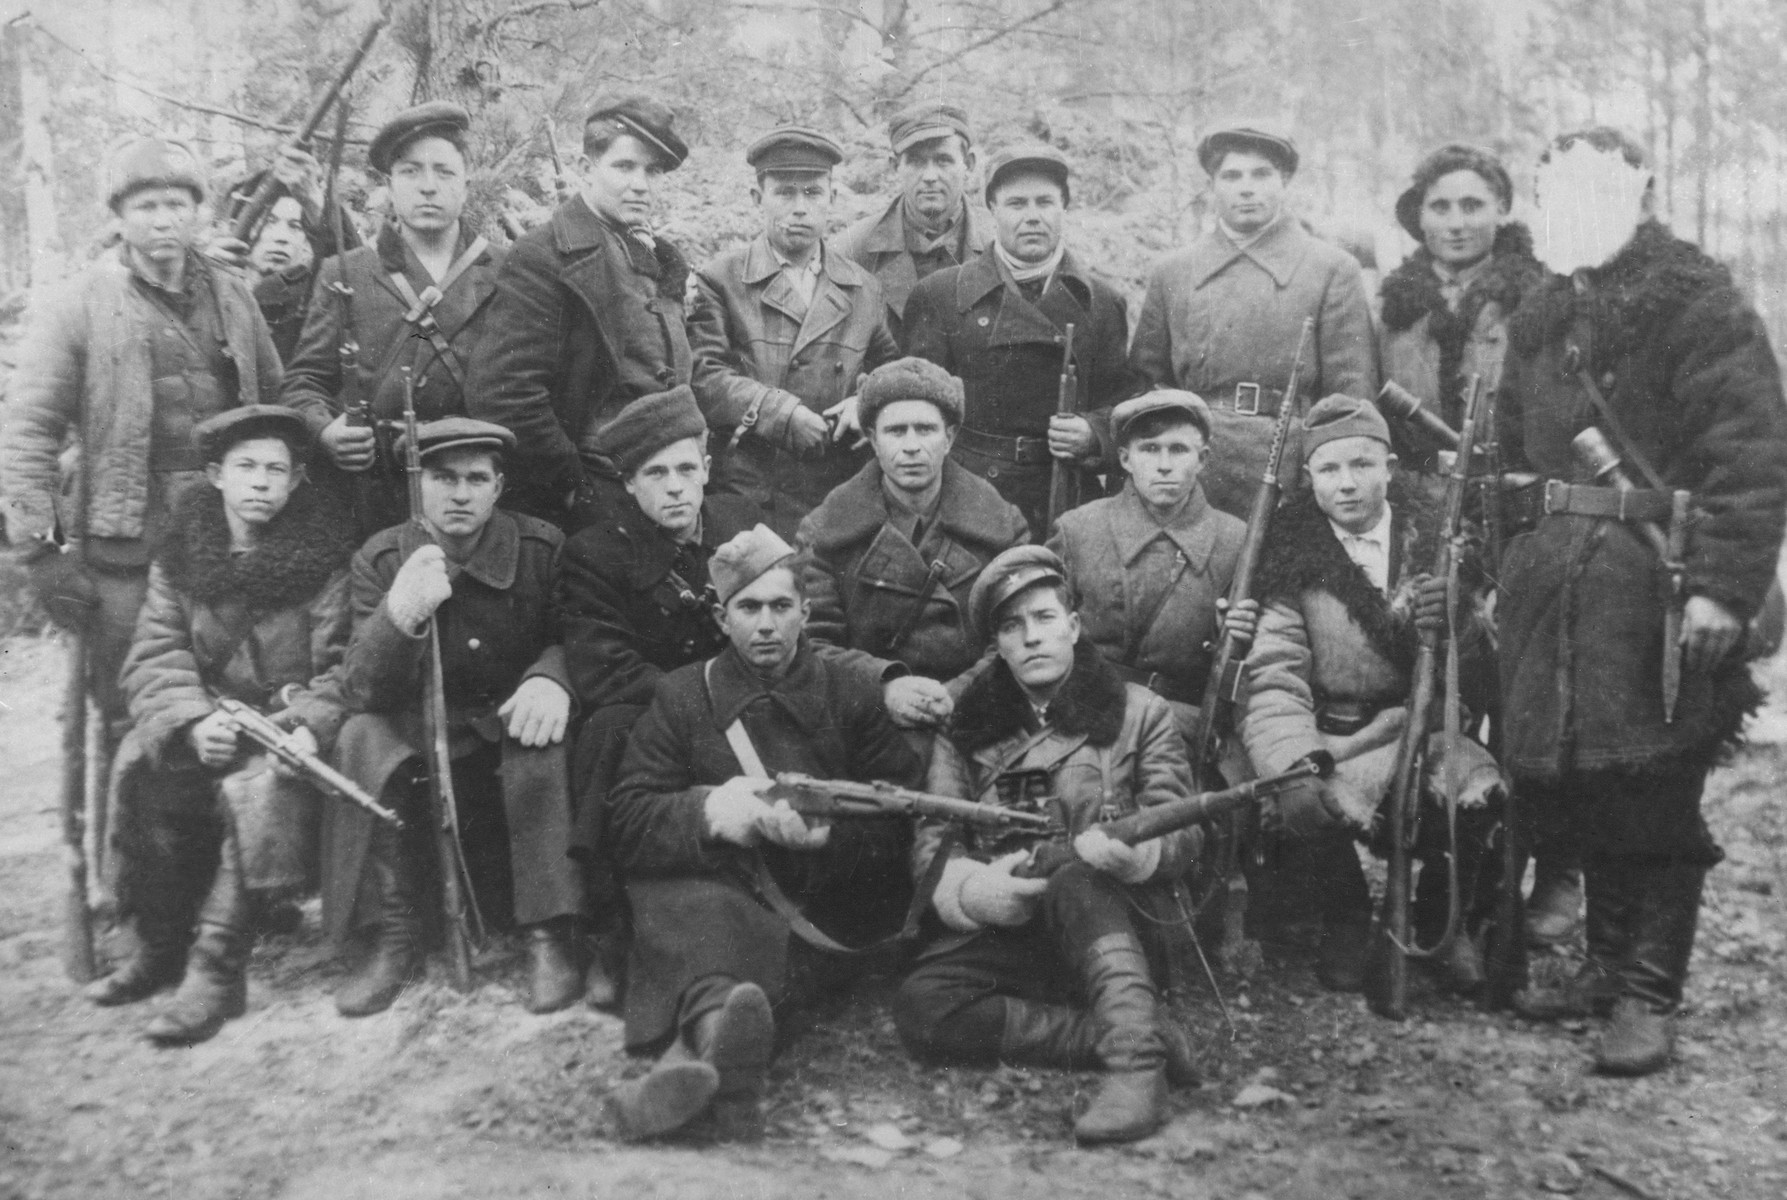 Group portrait of members of the intelligence unit of the Molotov partisan brigade.